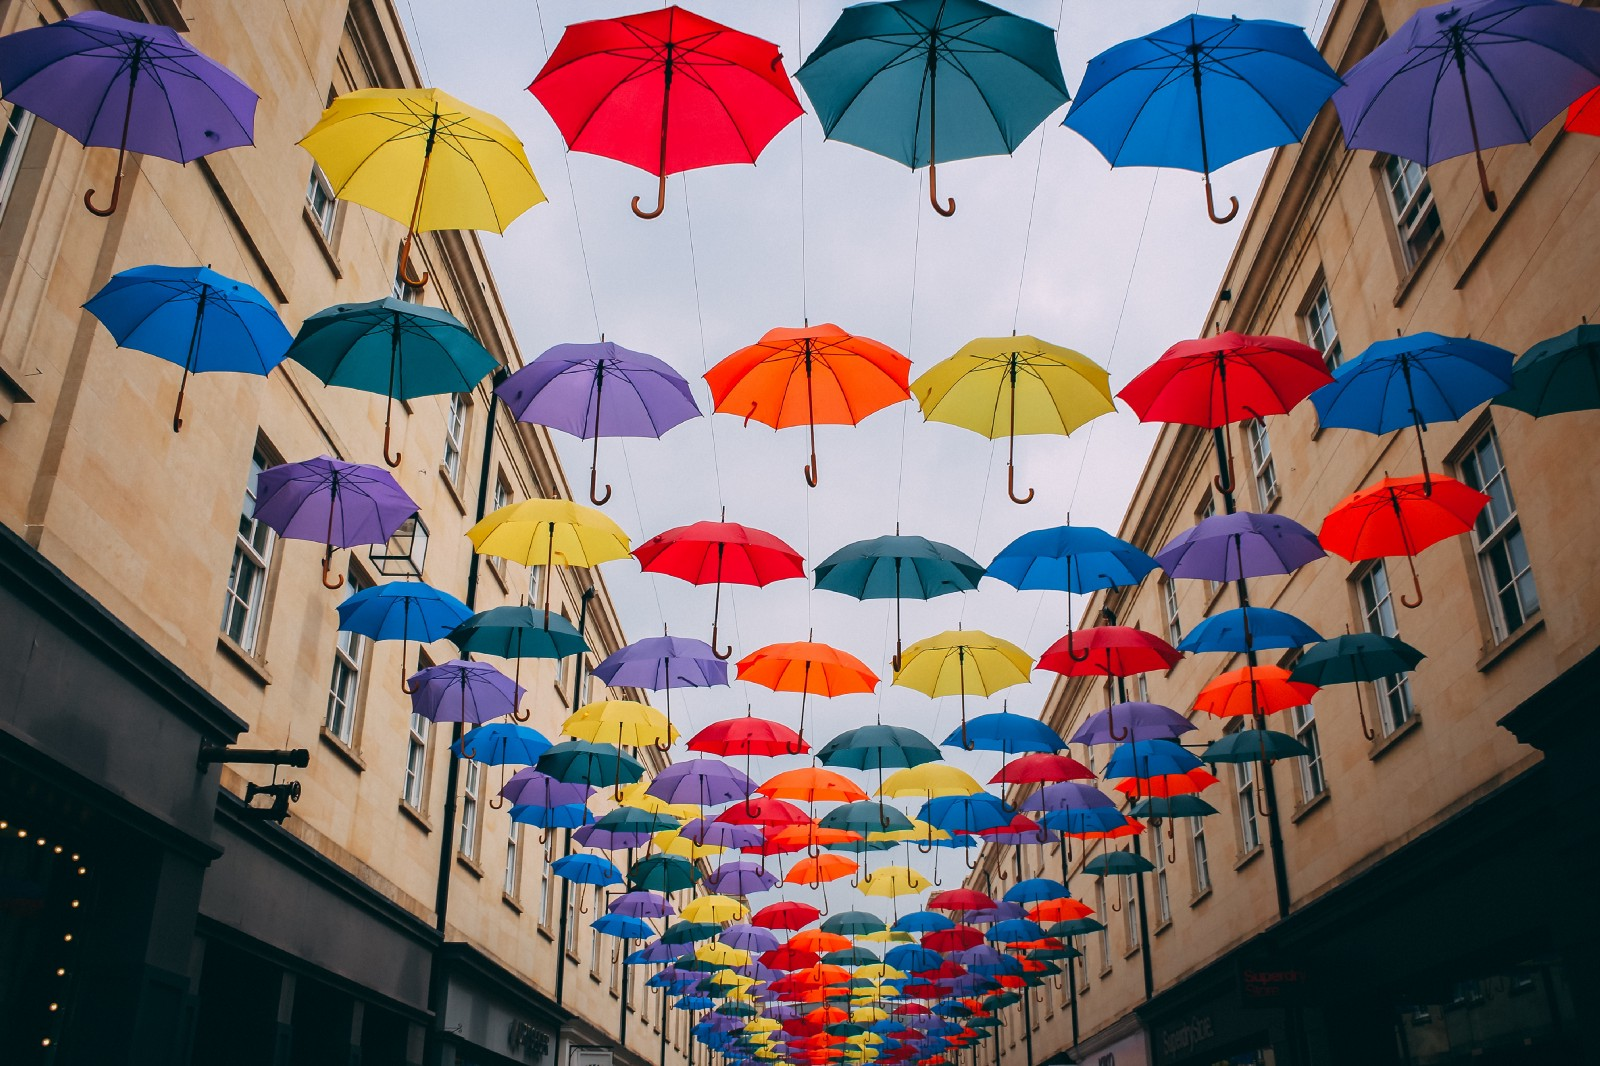 Color Play Why You Should Add Some To Your Life The Colorplay Photo By David Barajas On Unsplash